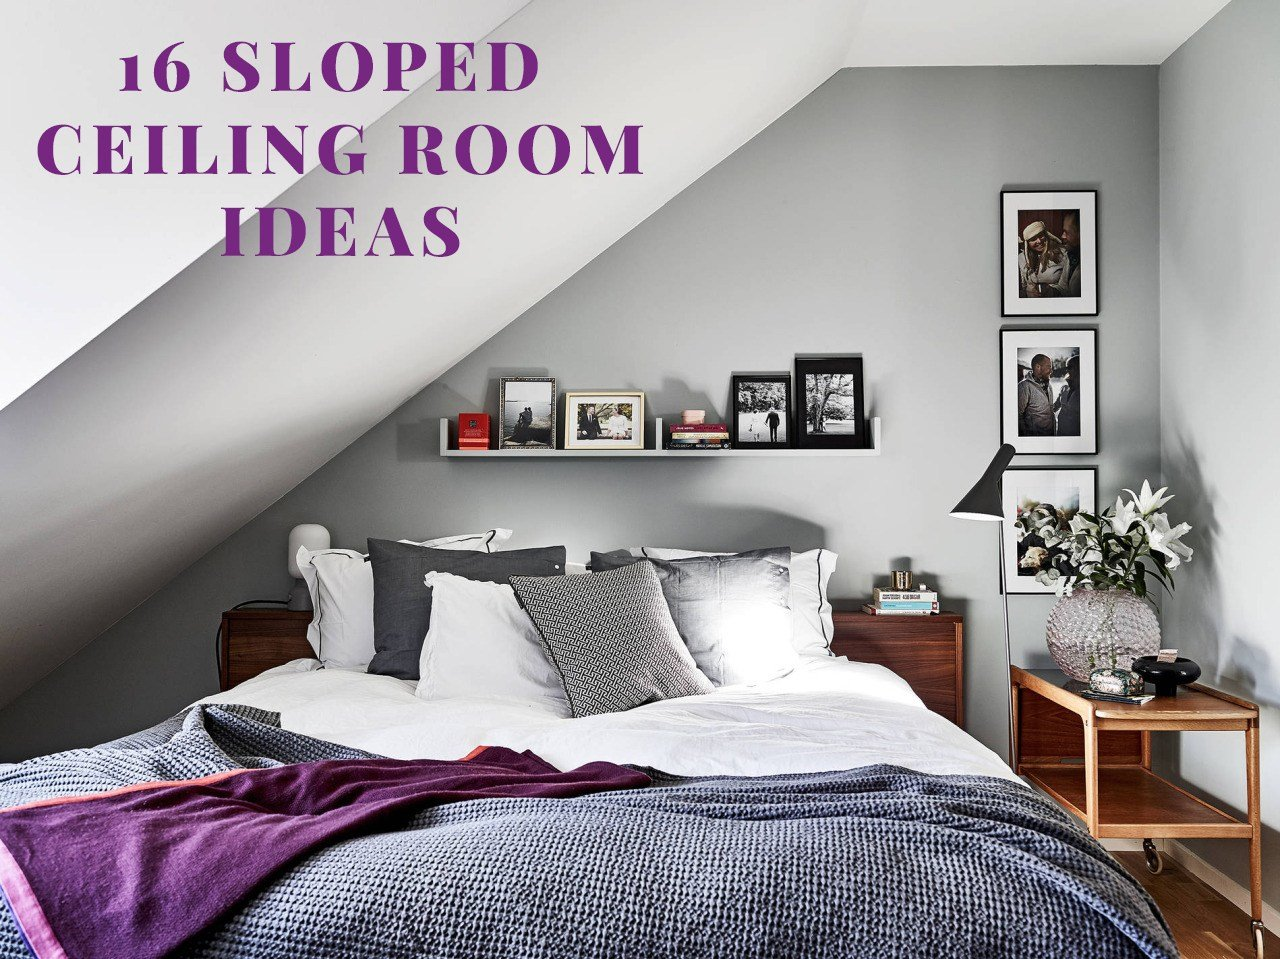 Best Sloped Ceiling Room Ideas Viskas Apie Interjerą With Pictures